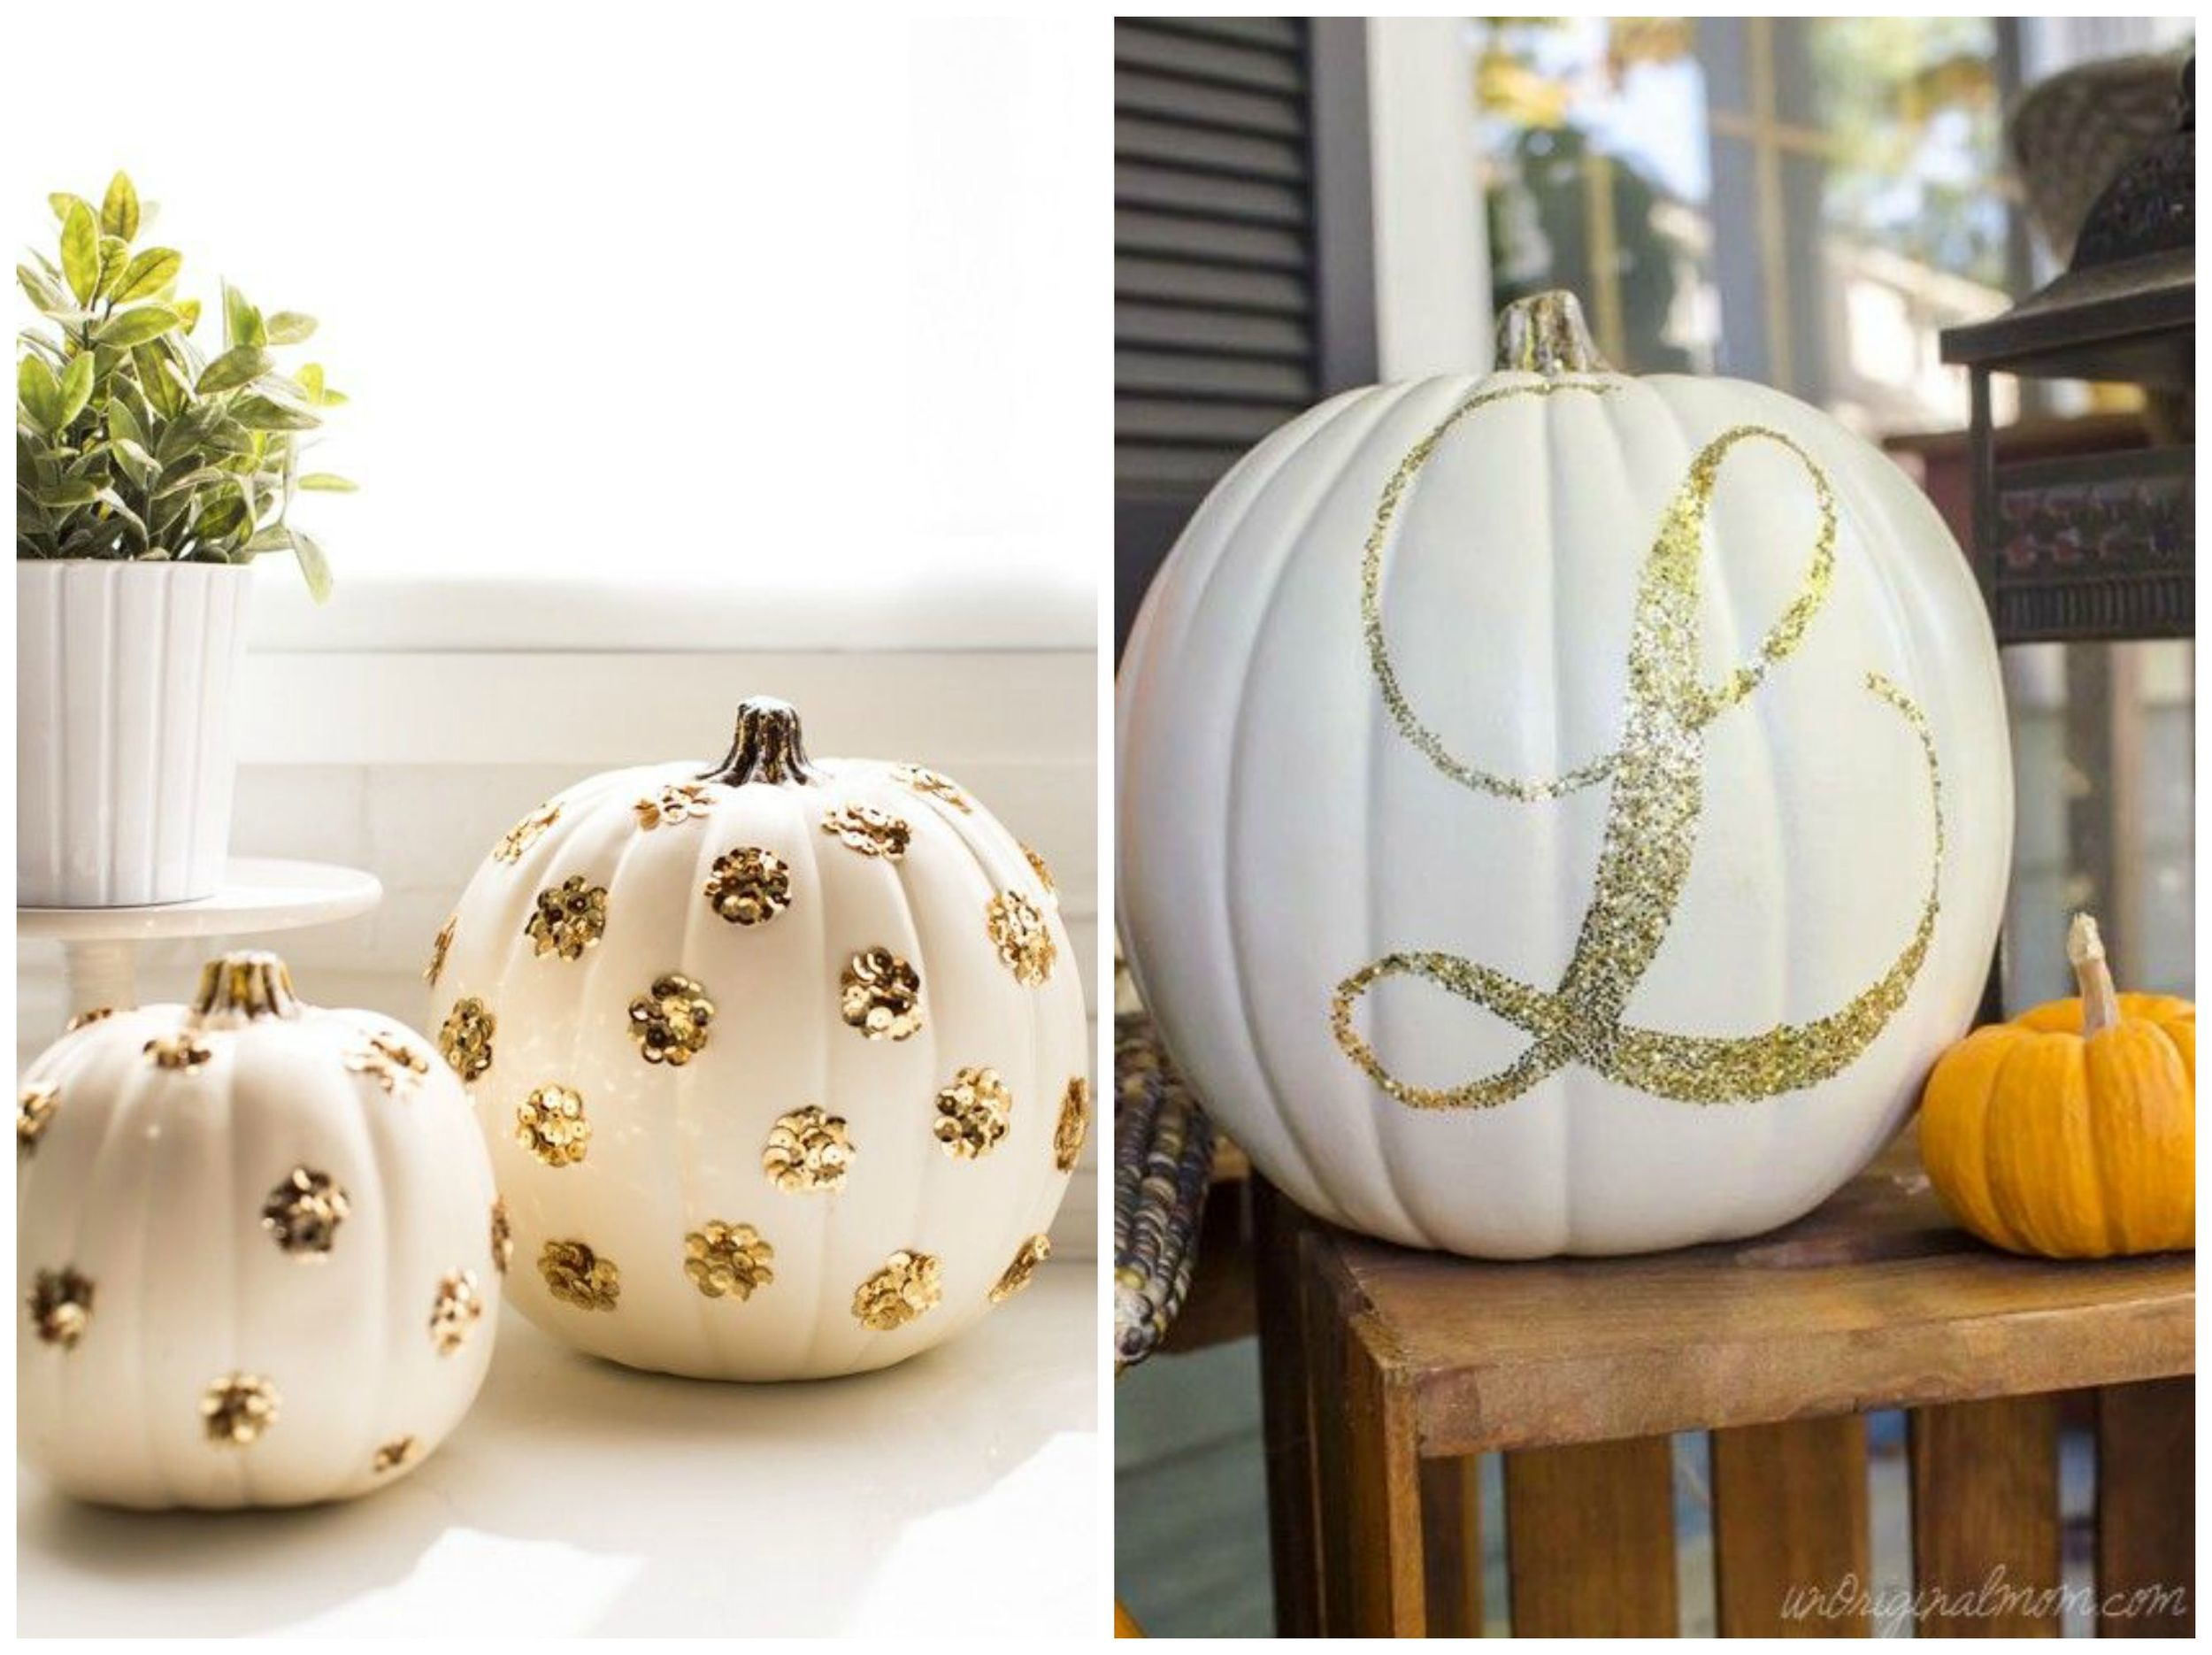 Sugar & Cloth ;  The Glitter Guide . Your pumpkins don't have to be orange! Painting and/or glittering them is a great way to create a fall vibe while sticking to your wedding color palette.